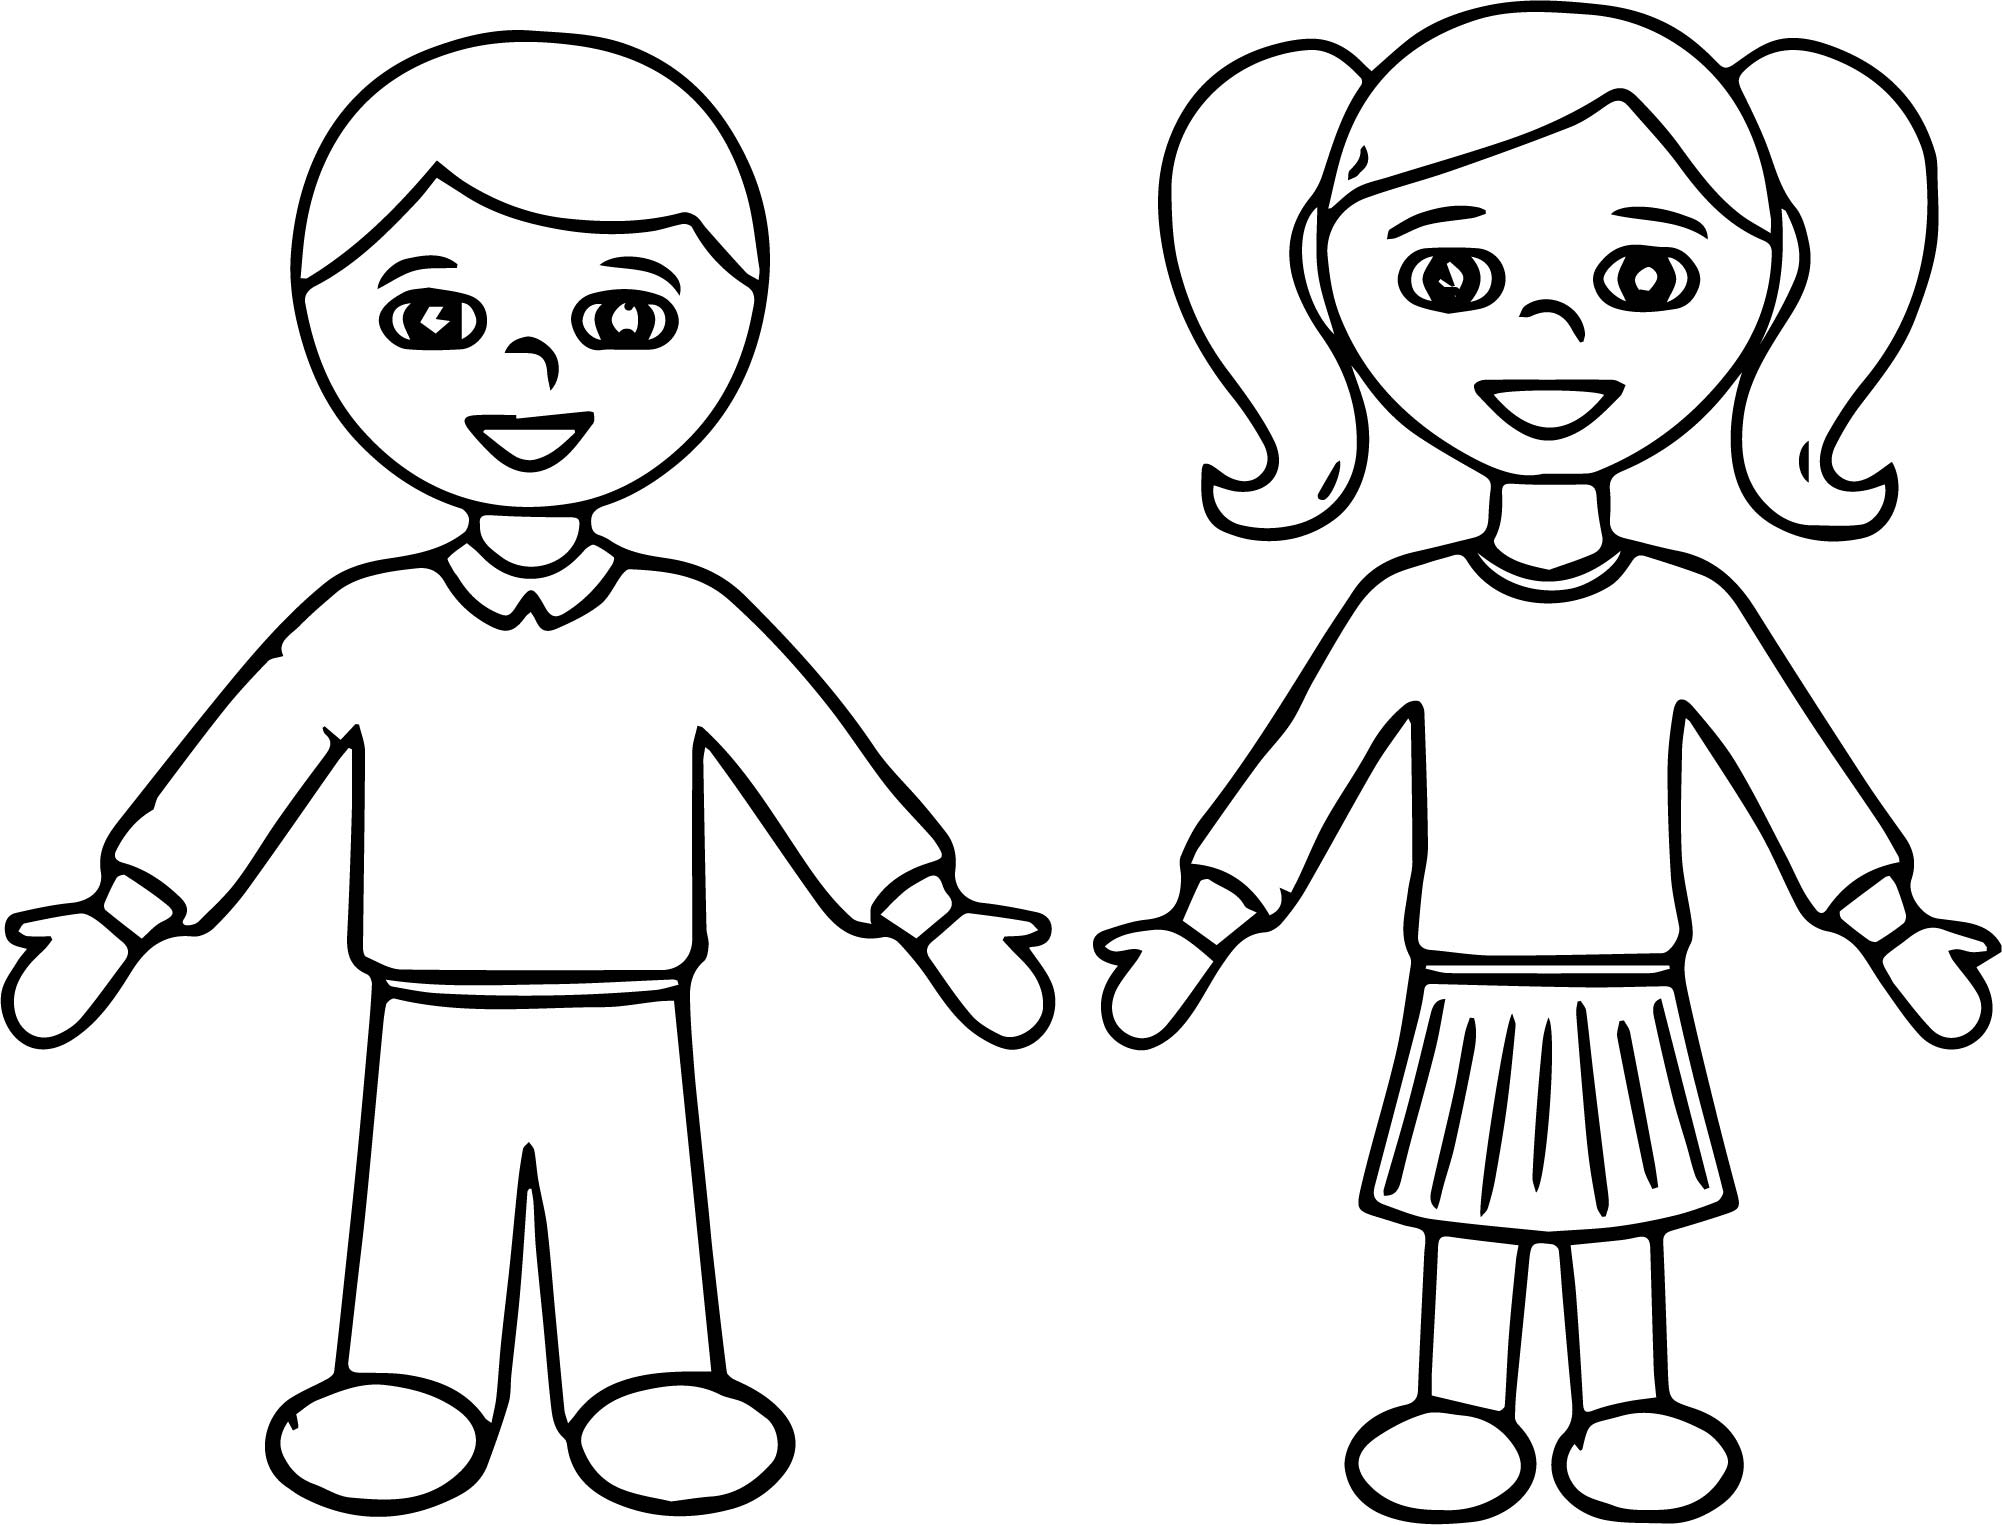 School Students Activity Village Coloring Page